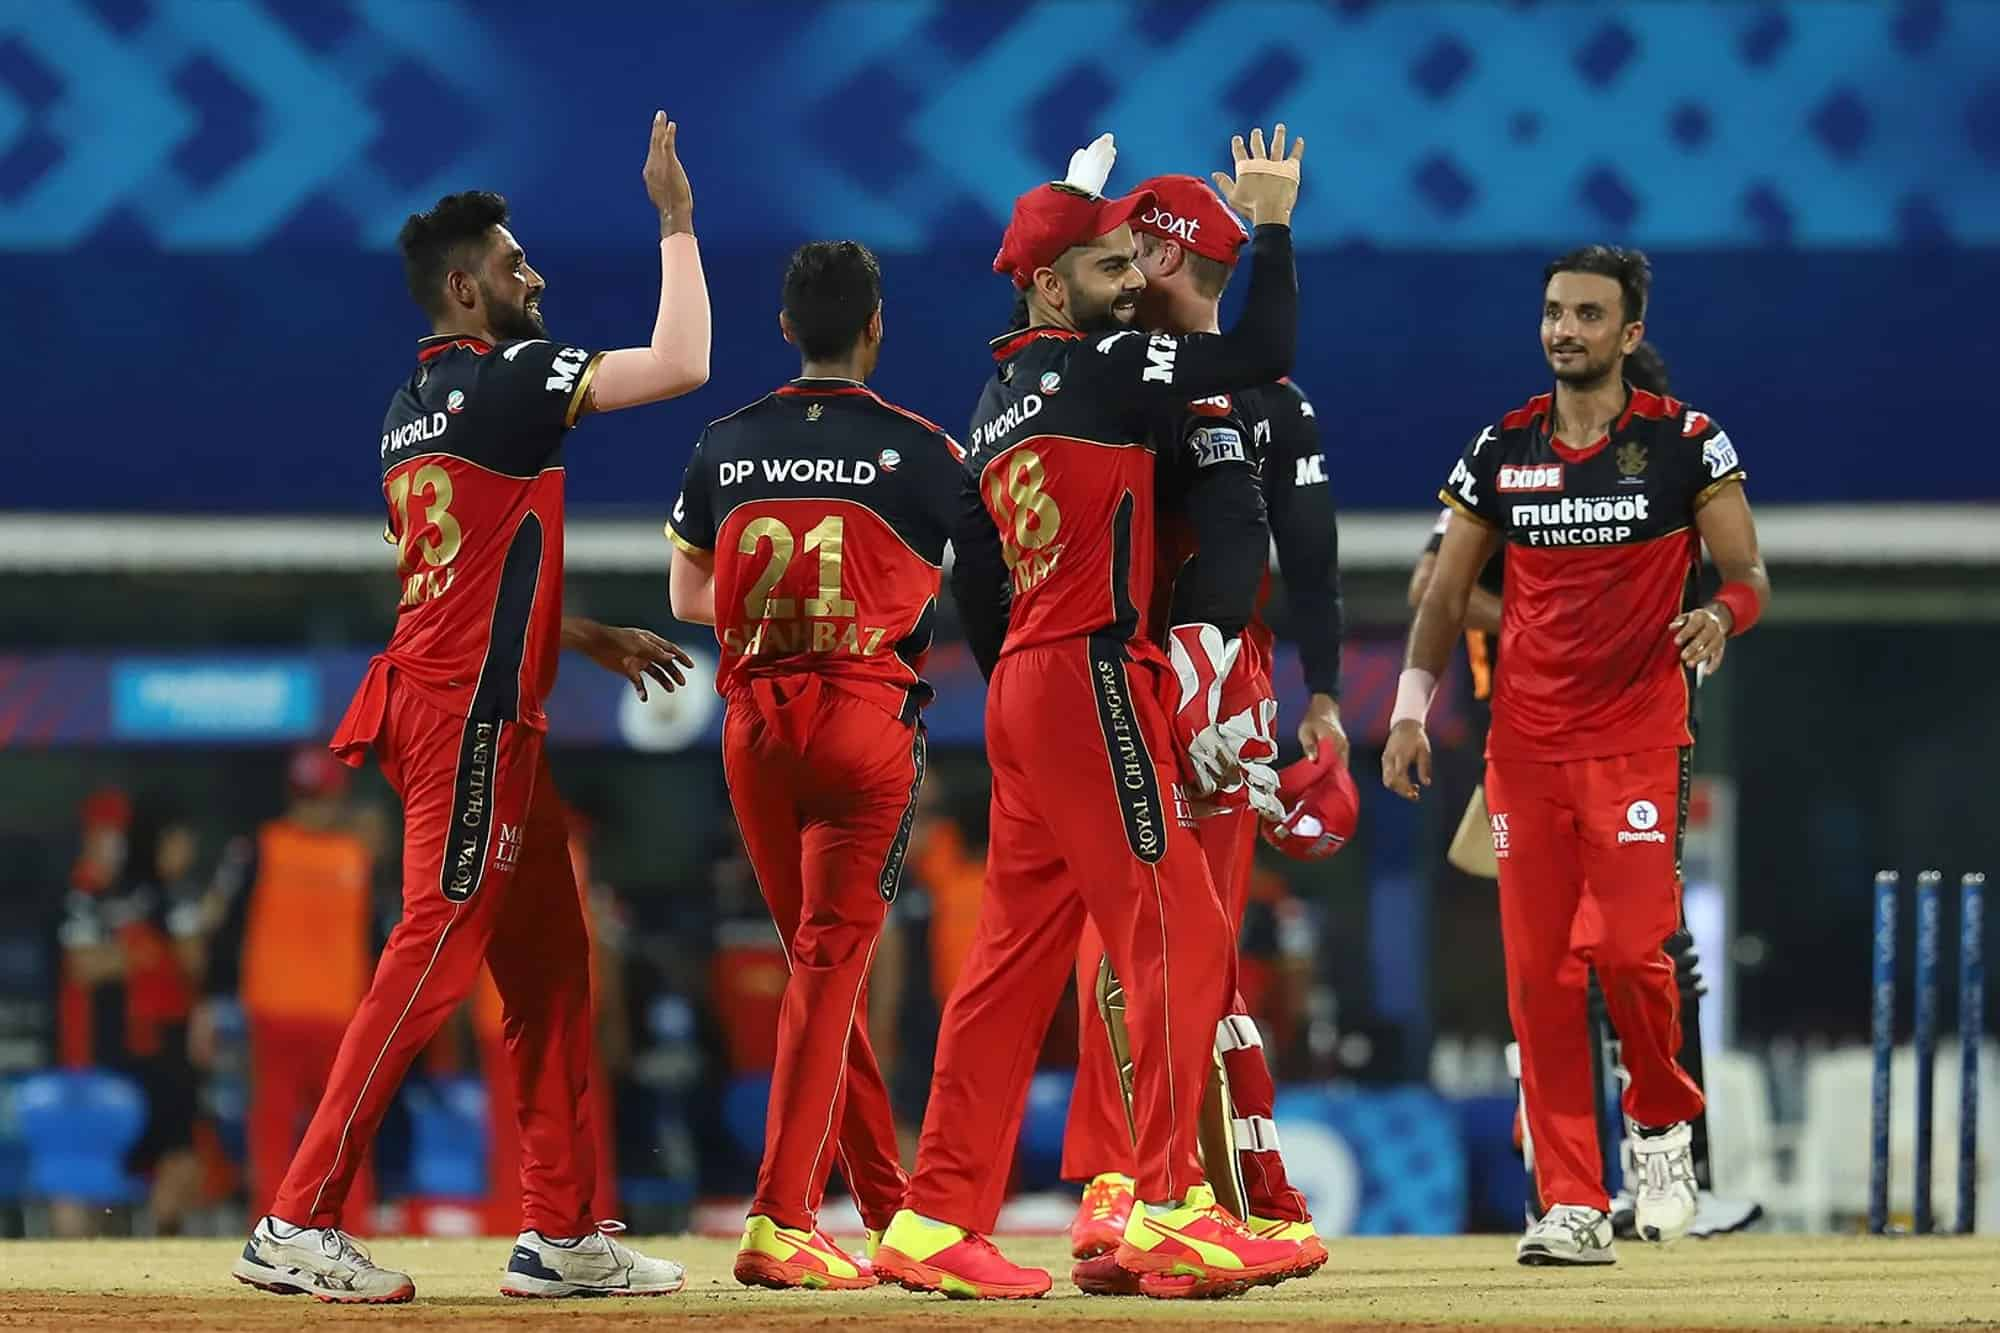 SRH vs RCB: Two Records Broken As RCB Beat SRH By 6 Runs In The 6th Match Of IPL 2021